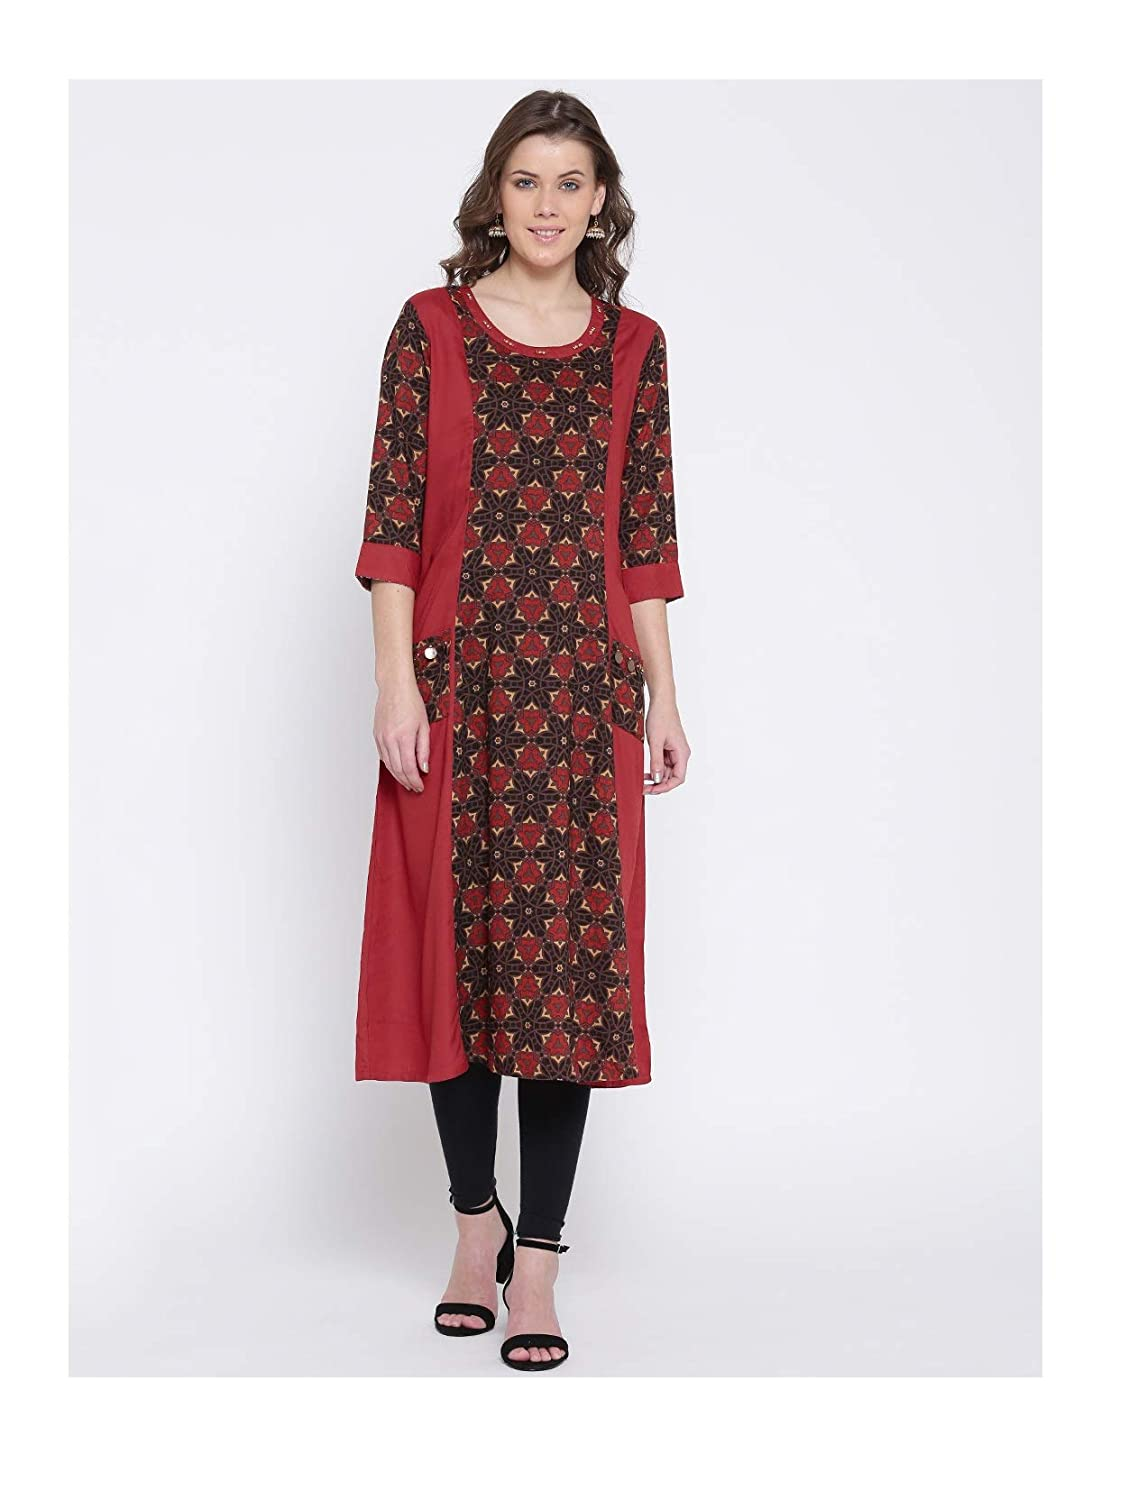 4acd3dba71ab5 Amazon.com  Hiral Designer Plus Size Indian Kurti for Women Red   Black  Printed A-Line Kurta Cotton Dresses  Clothing